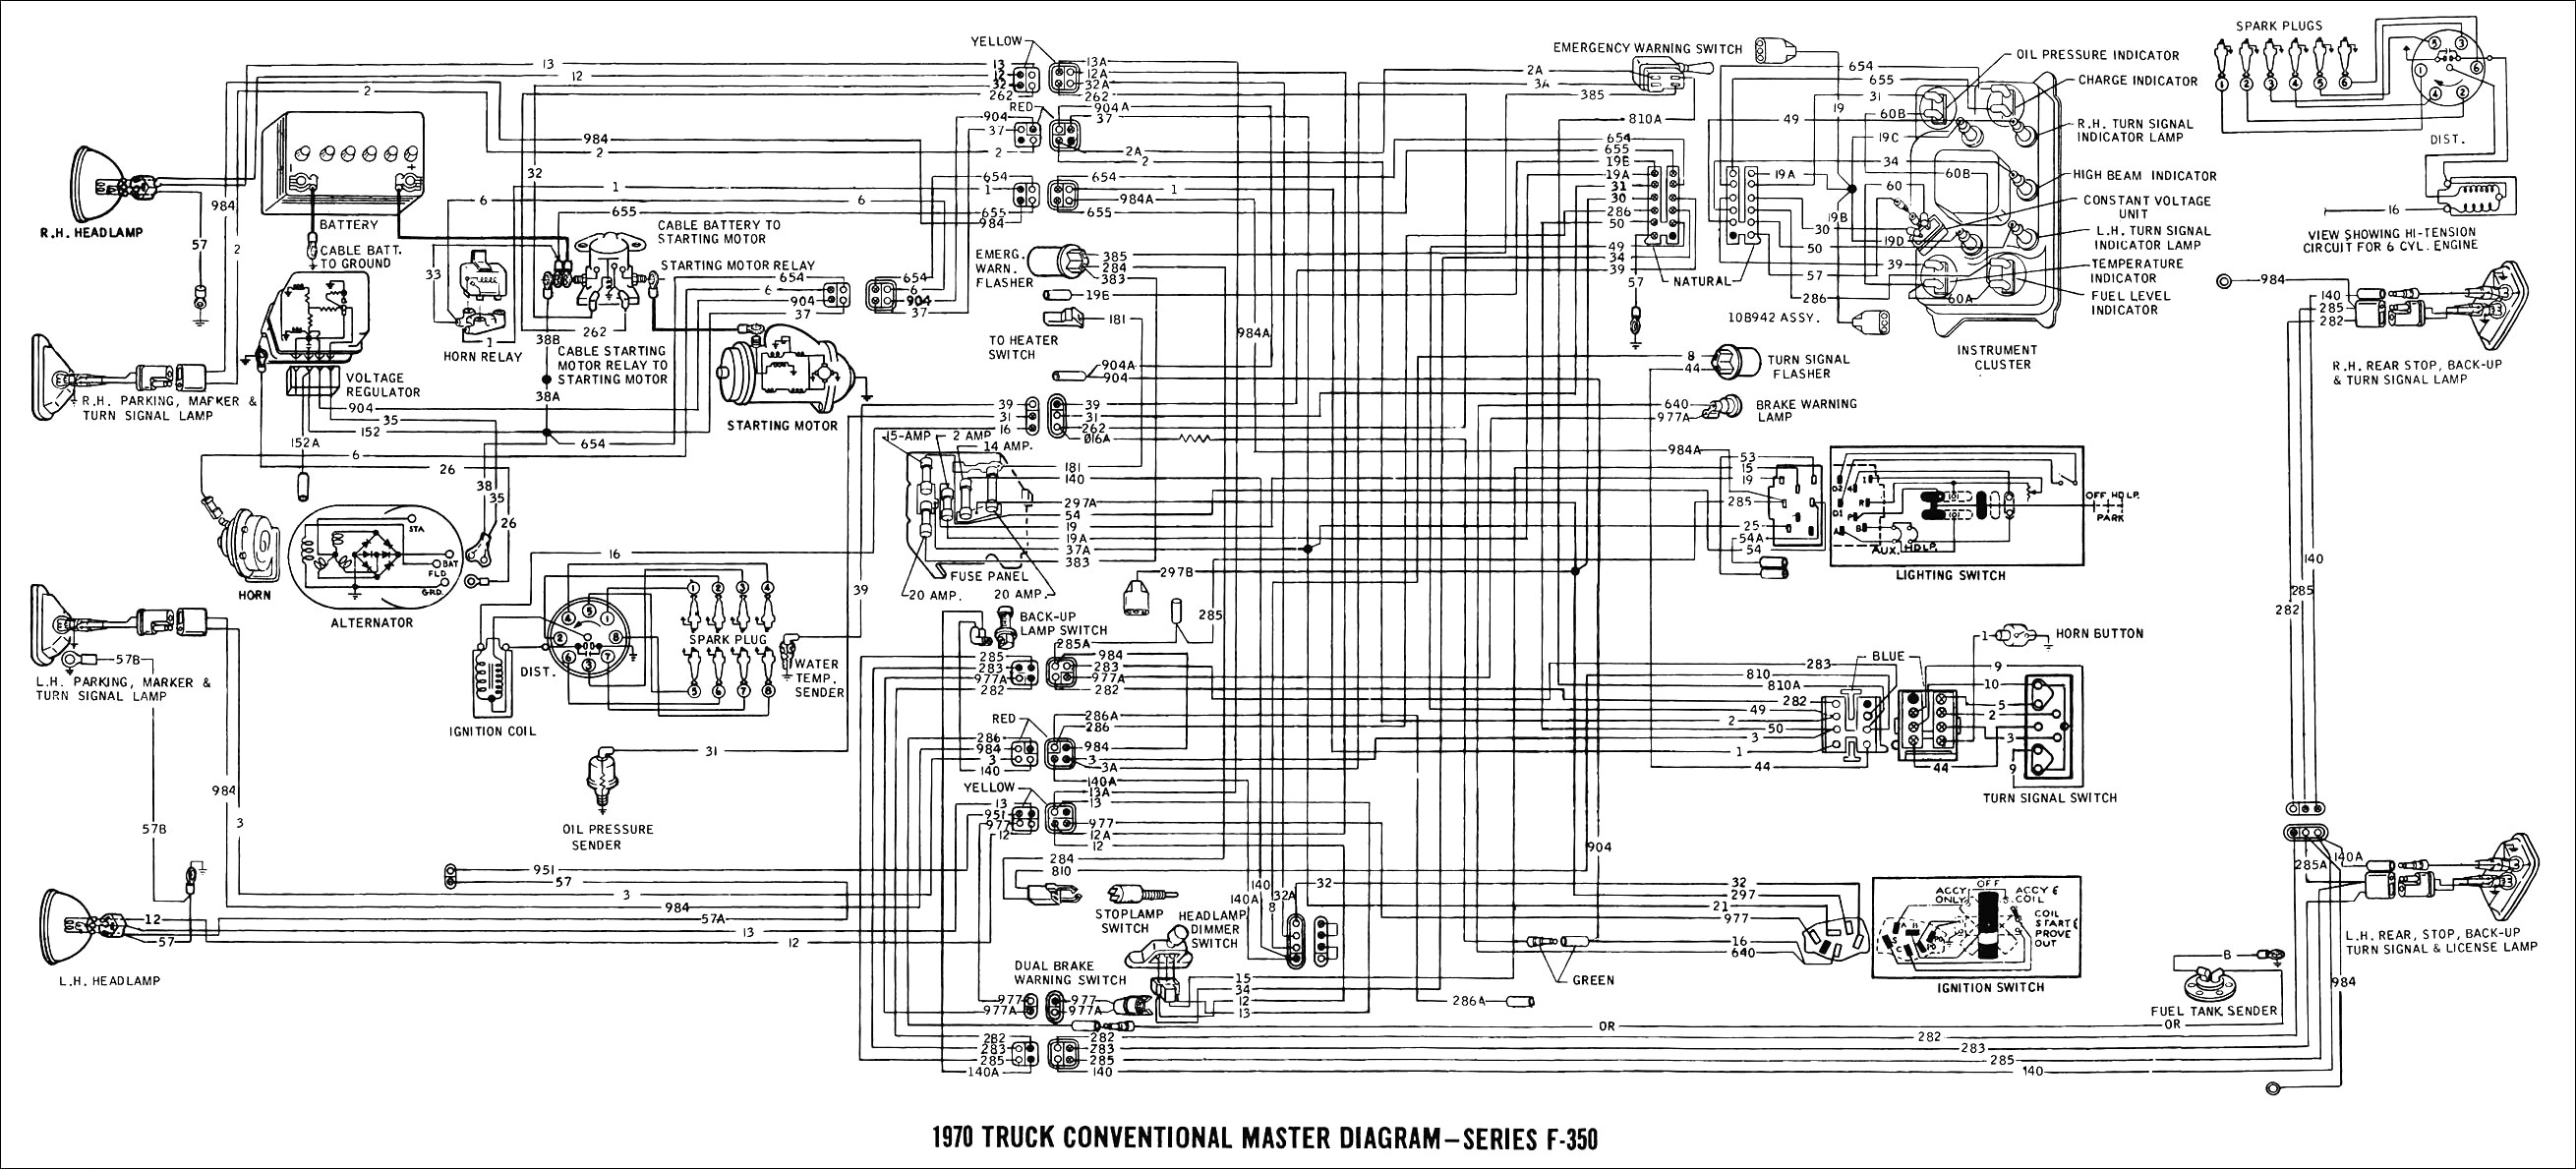 97 ford ranger engine diagram f100 alternator wiring diagram also rh detoxicrecenze com